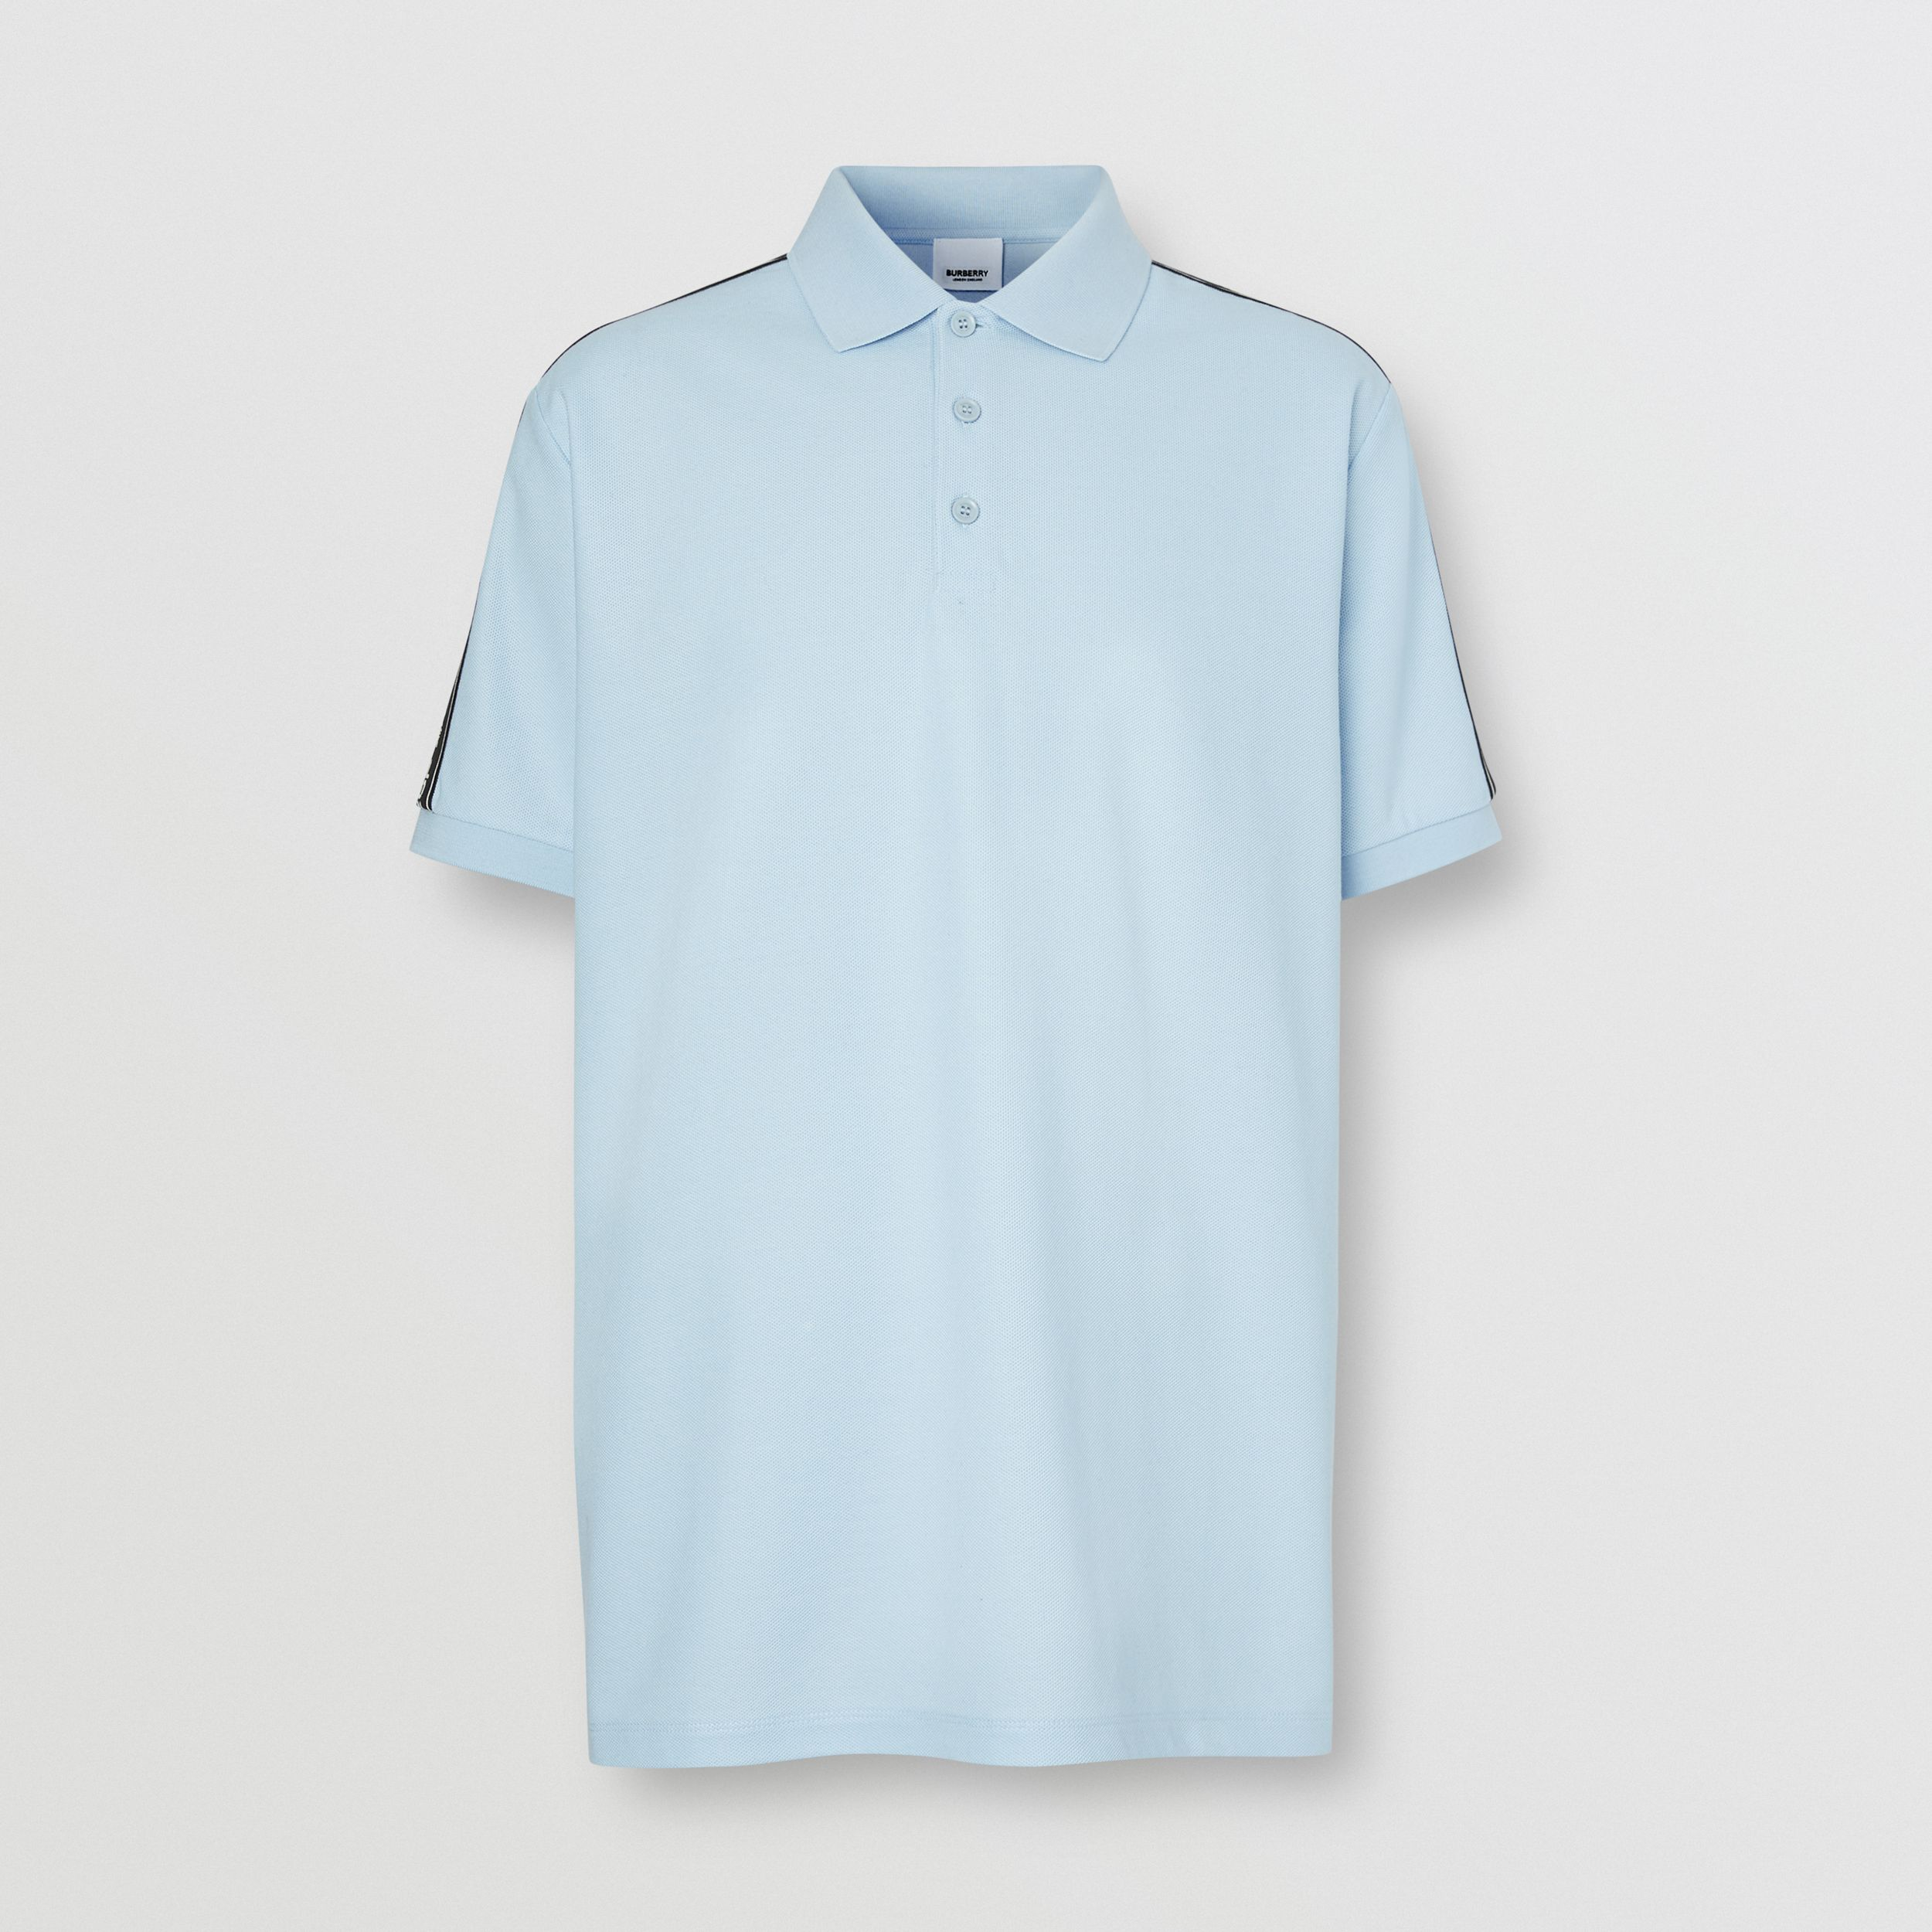 Logo Tape Cotton Piqué Polo Shirt in Pale Blue - Men | Burberry Hong Kong S.A.R. - 4